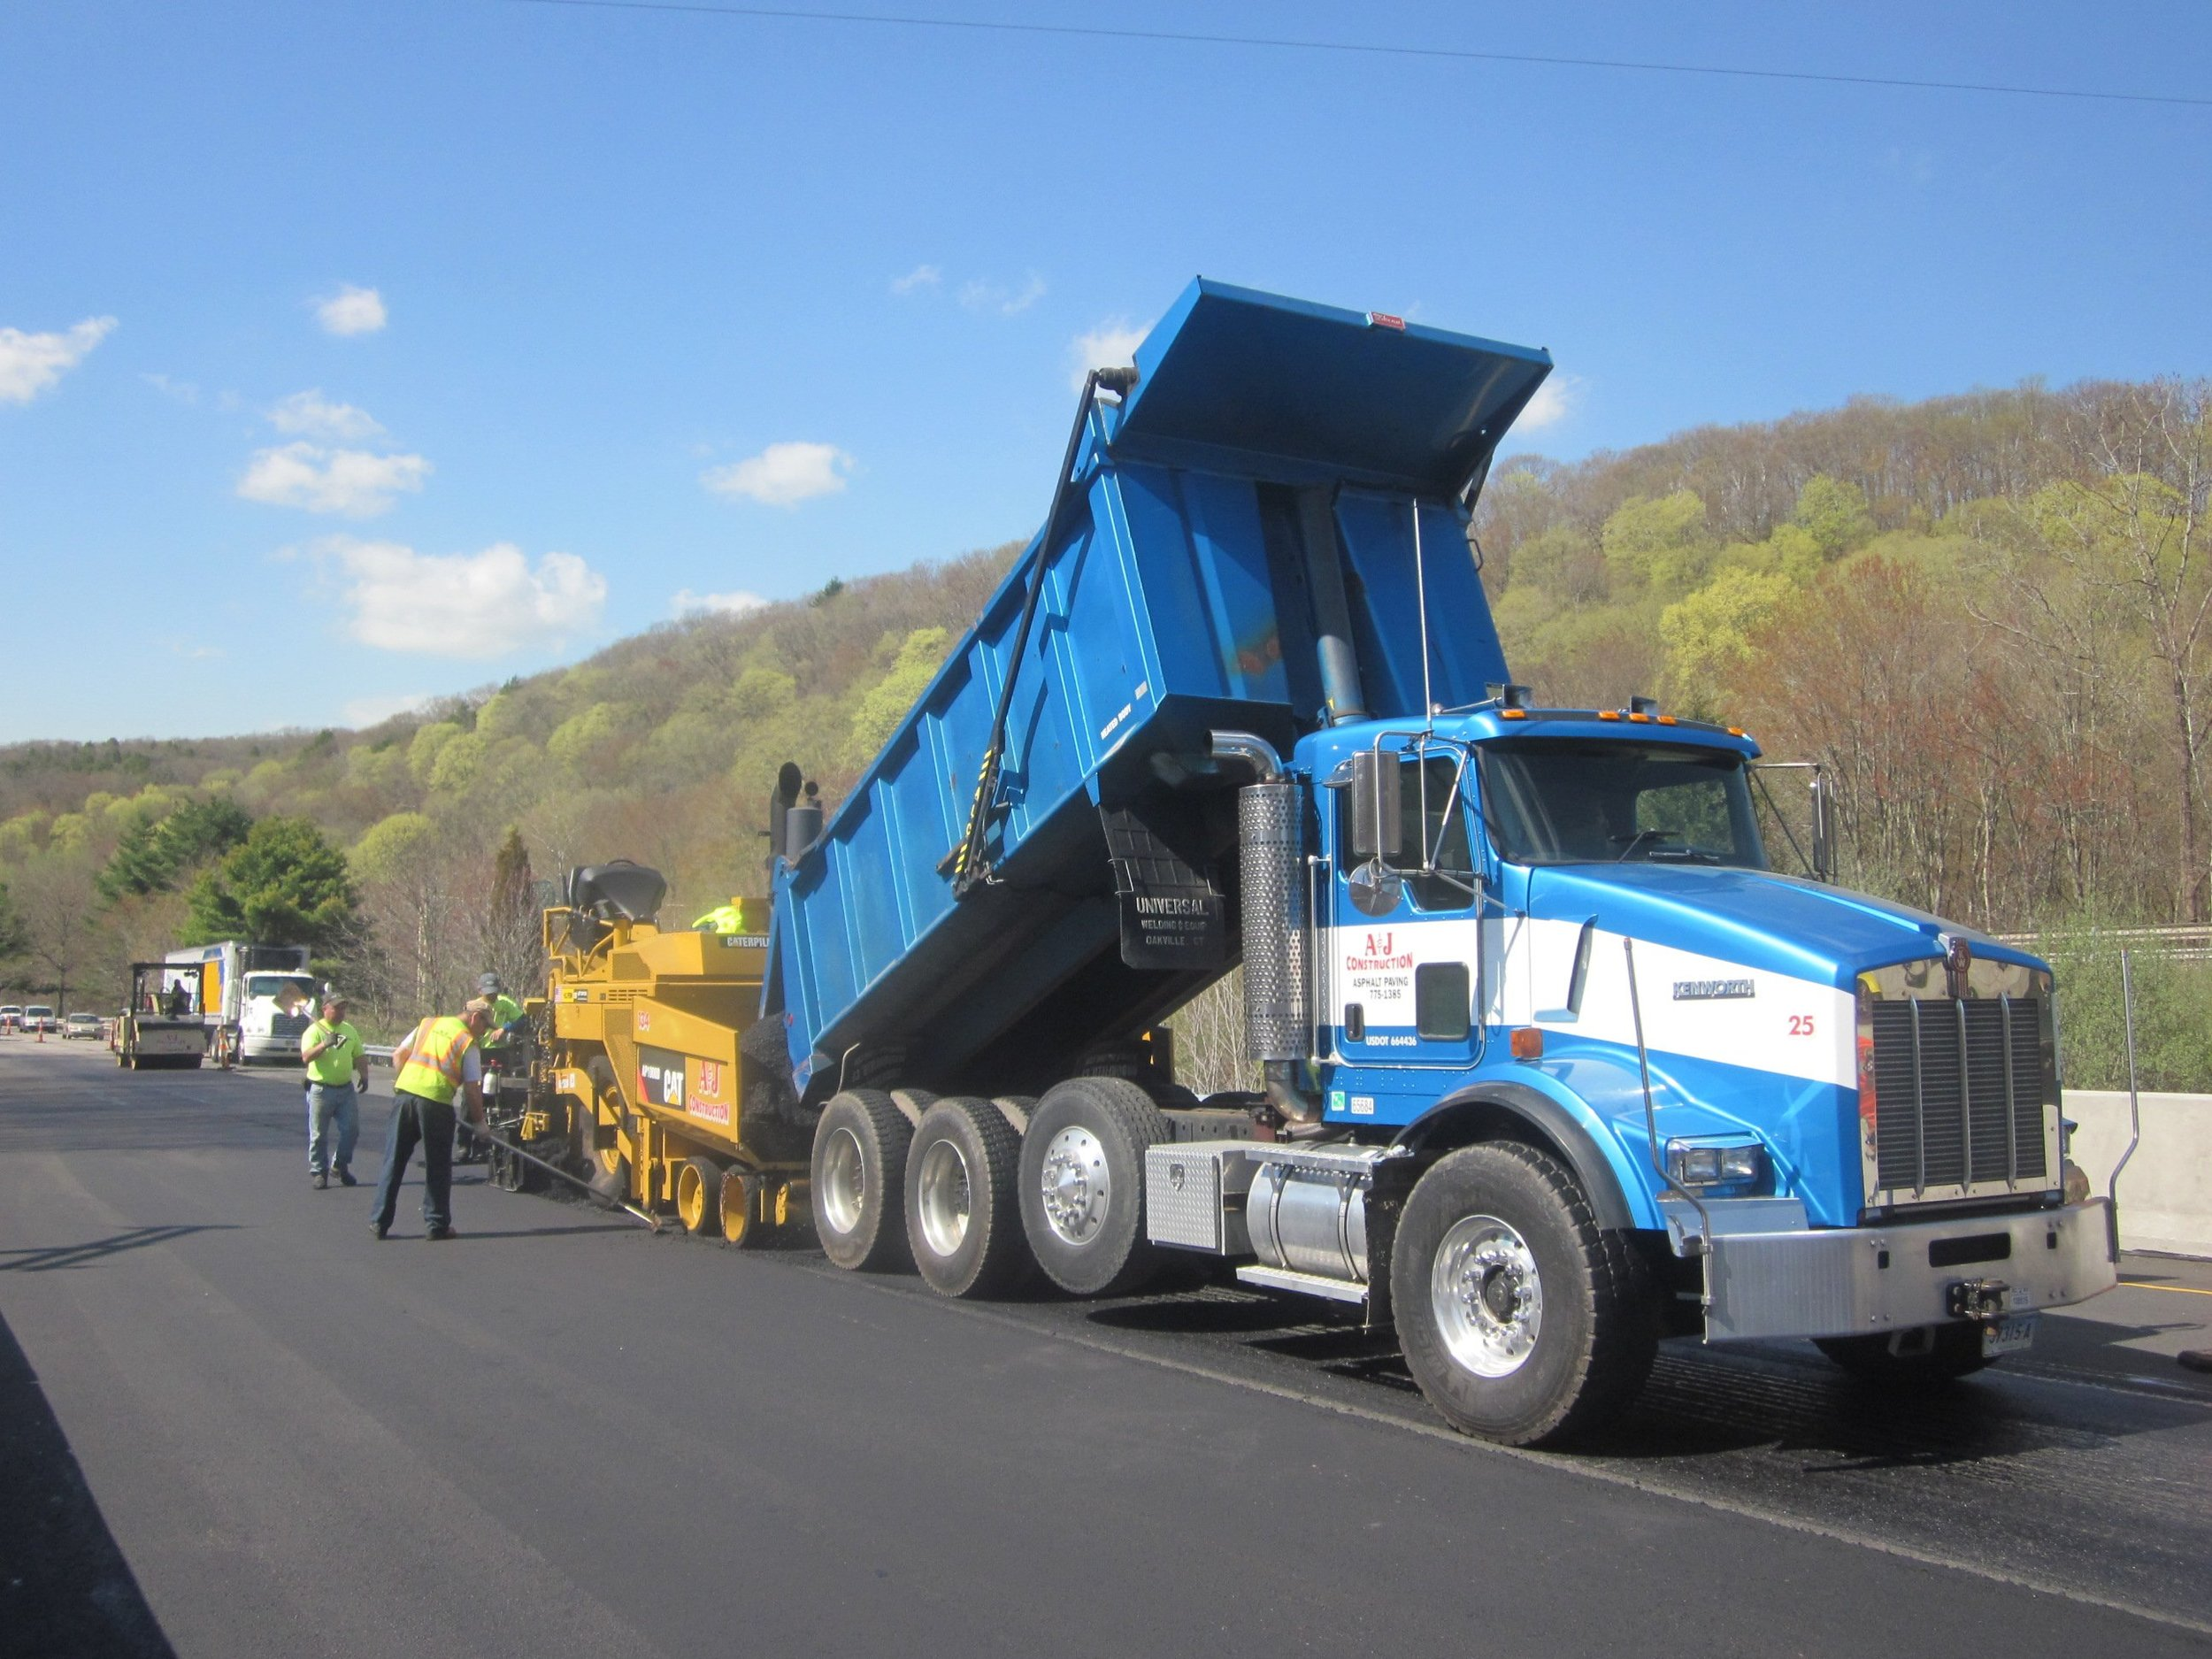 Best heavy hauling equipment rental company in Brookfield, CT